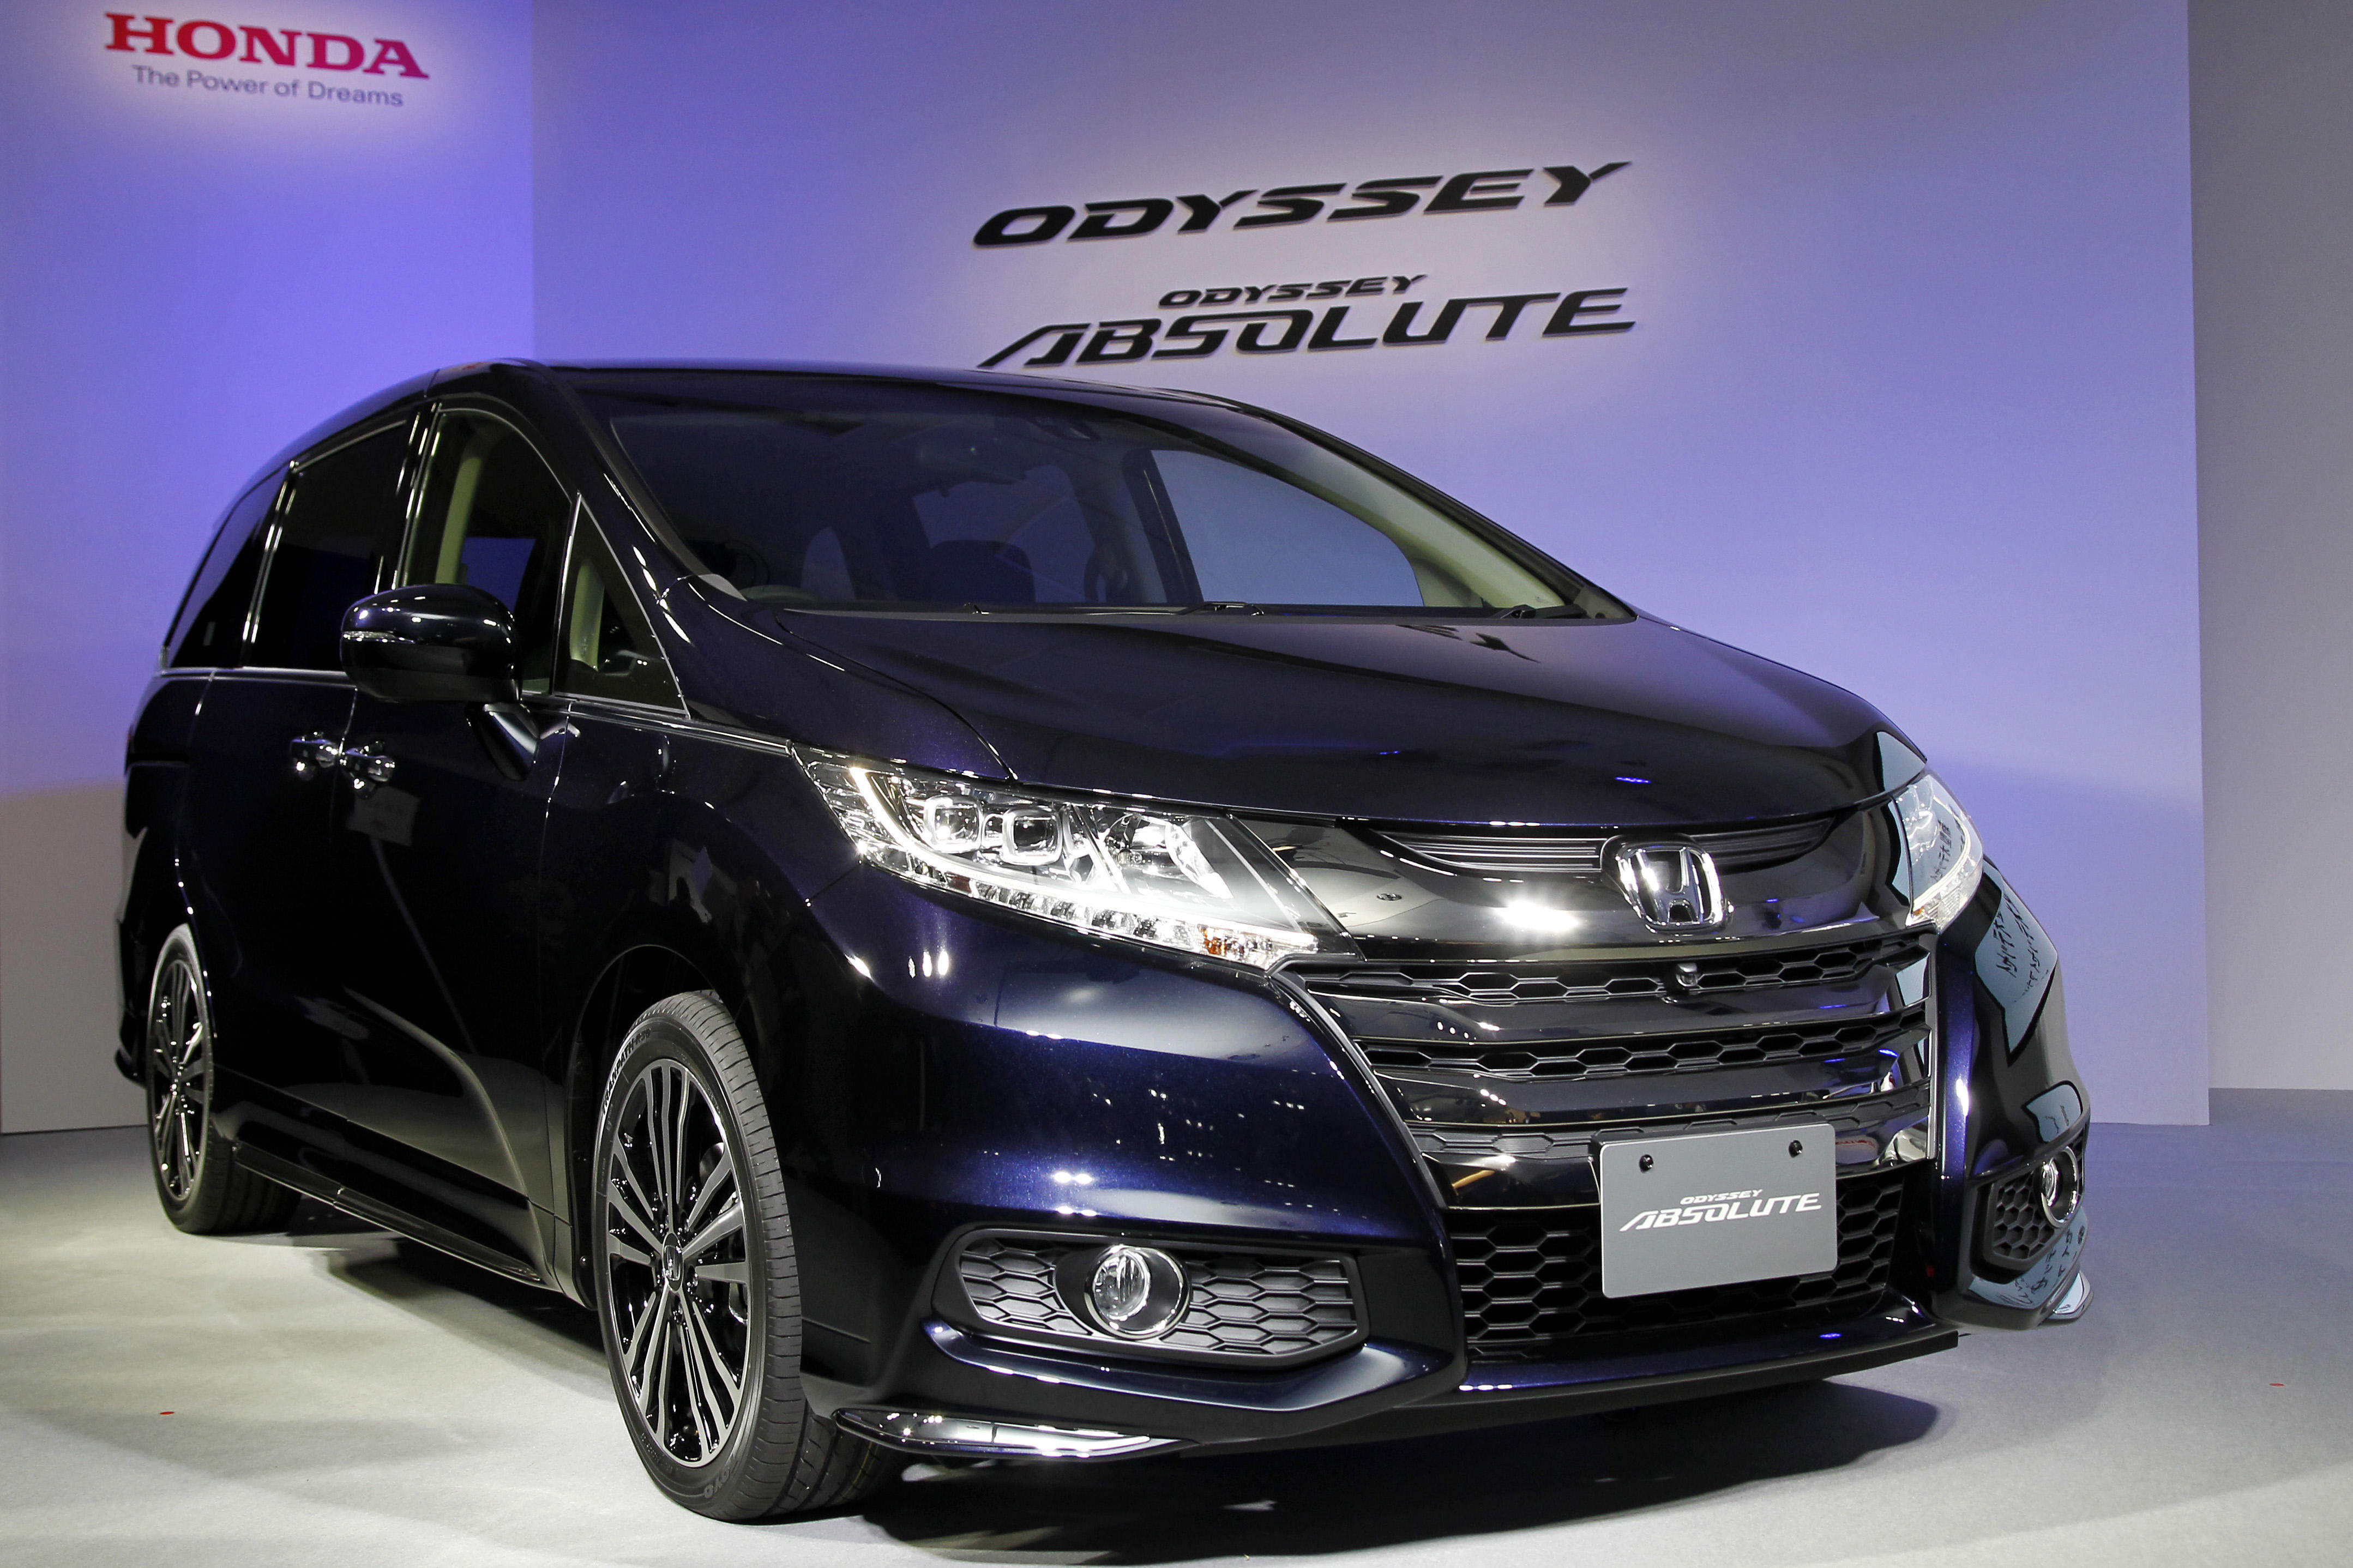 honda recalls 900 000 odyssey minivans squib cbs news. Black Bedroom Furniture Sets. Home Design Ideas